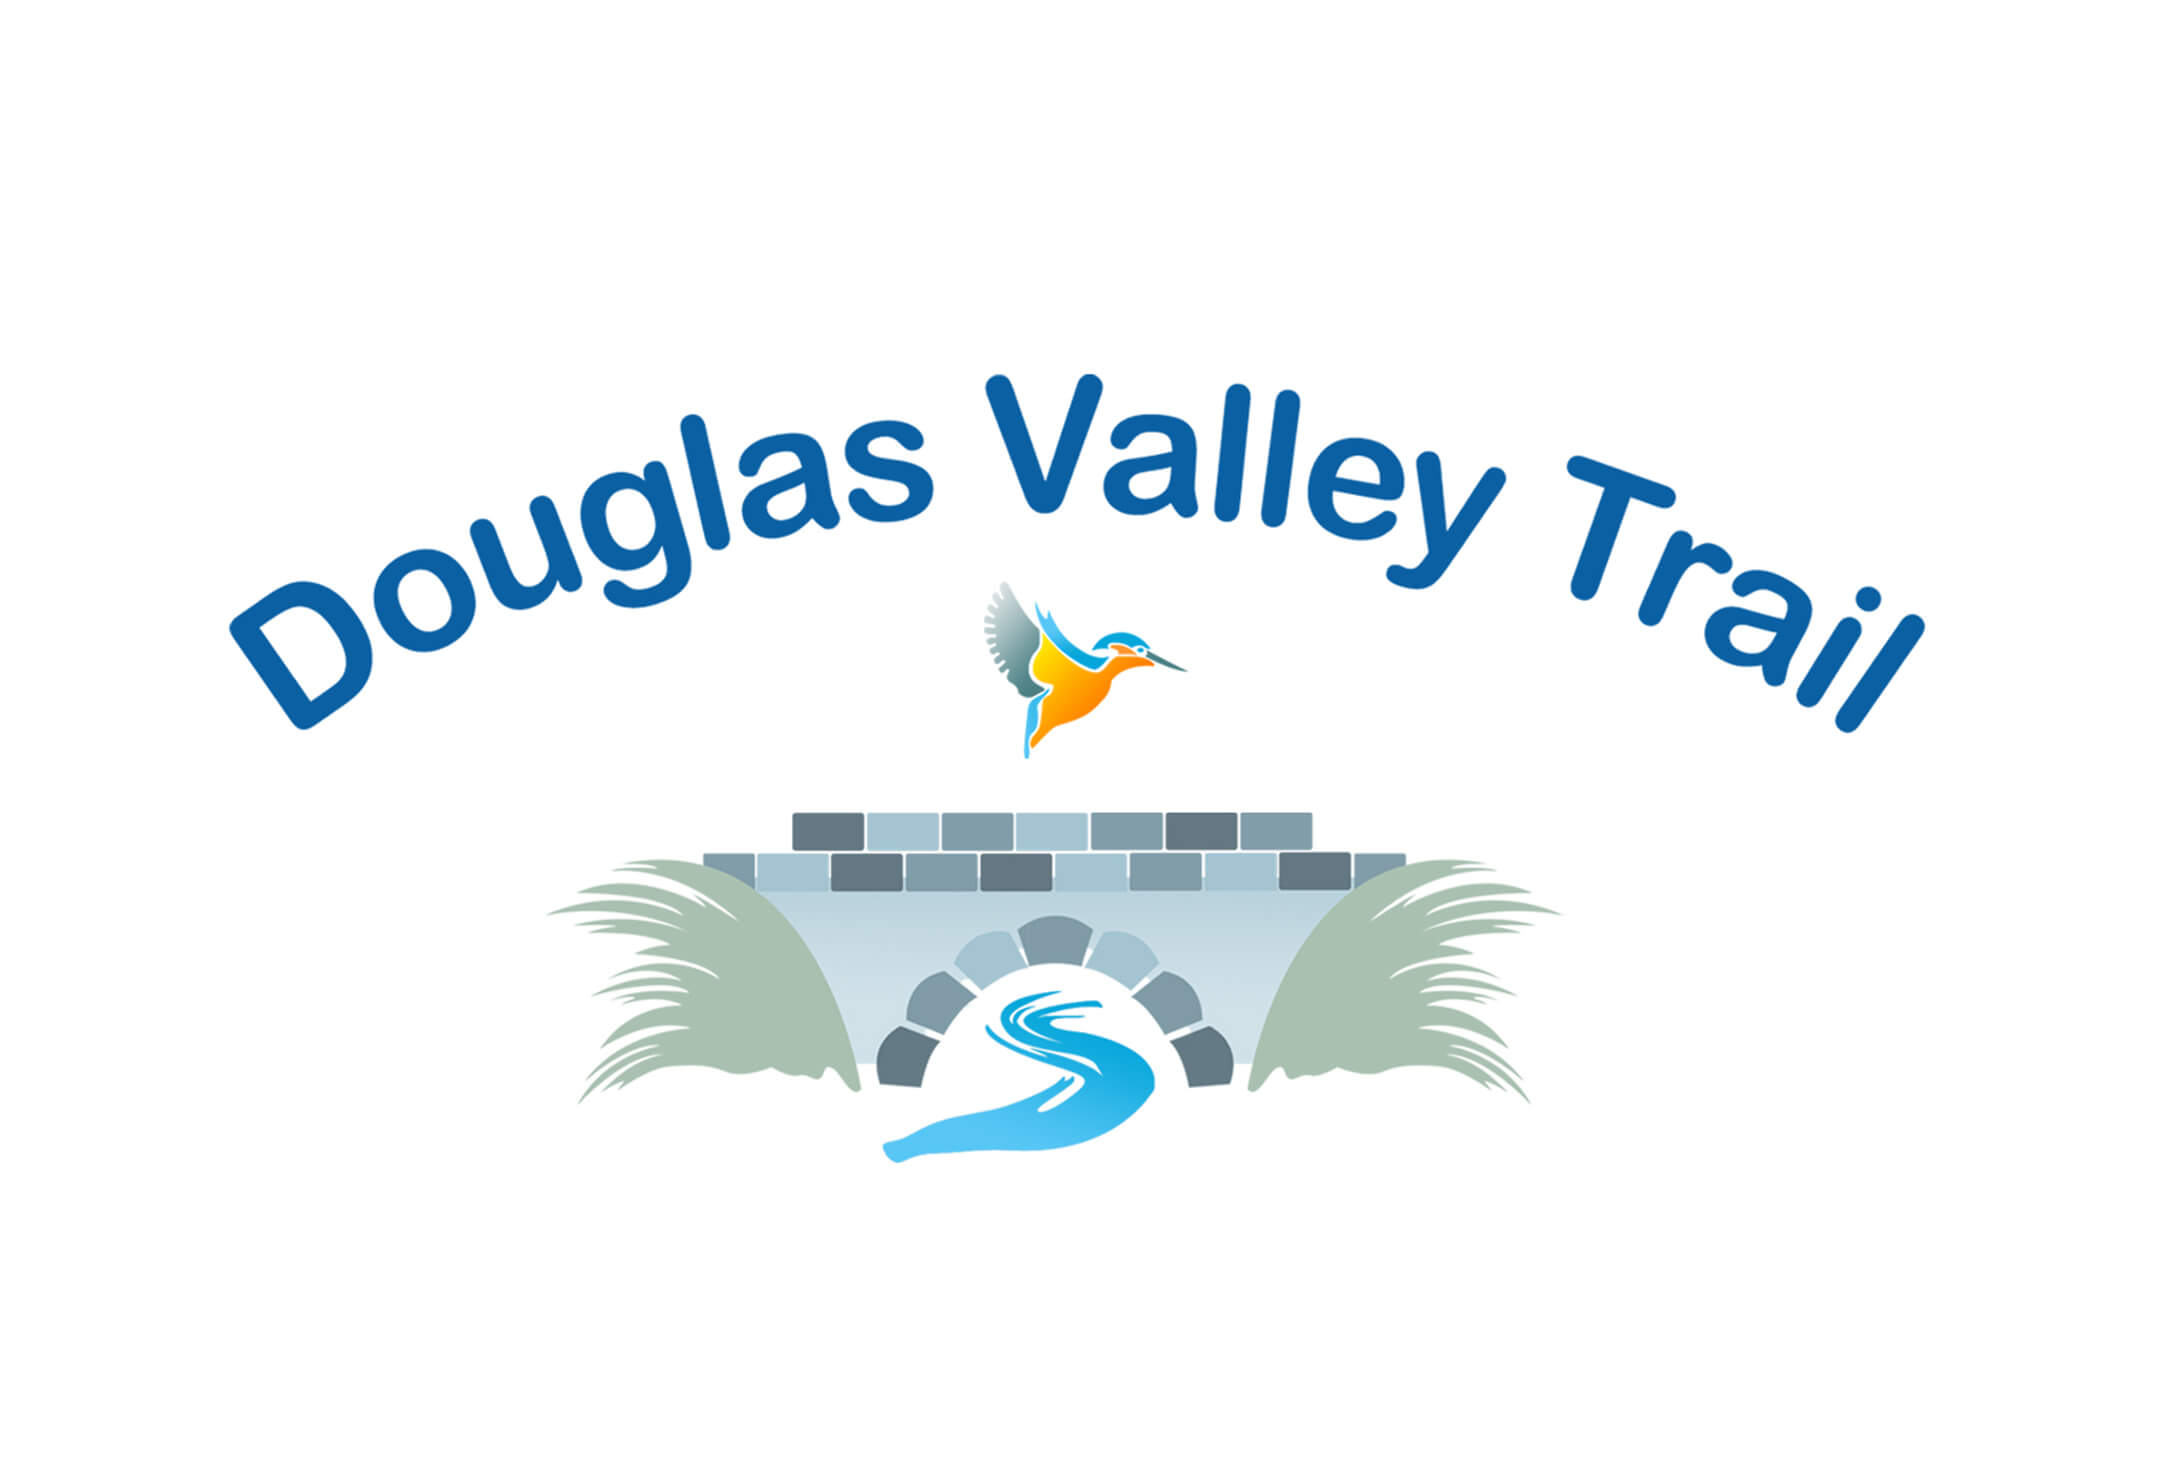 Douglad Valley Trail